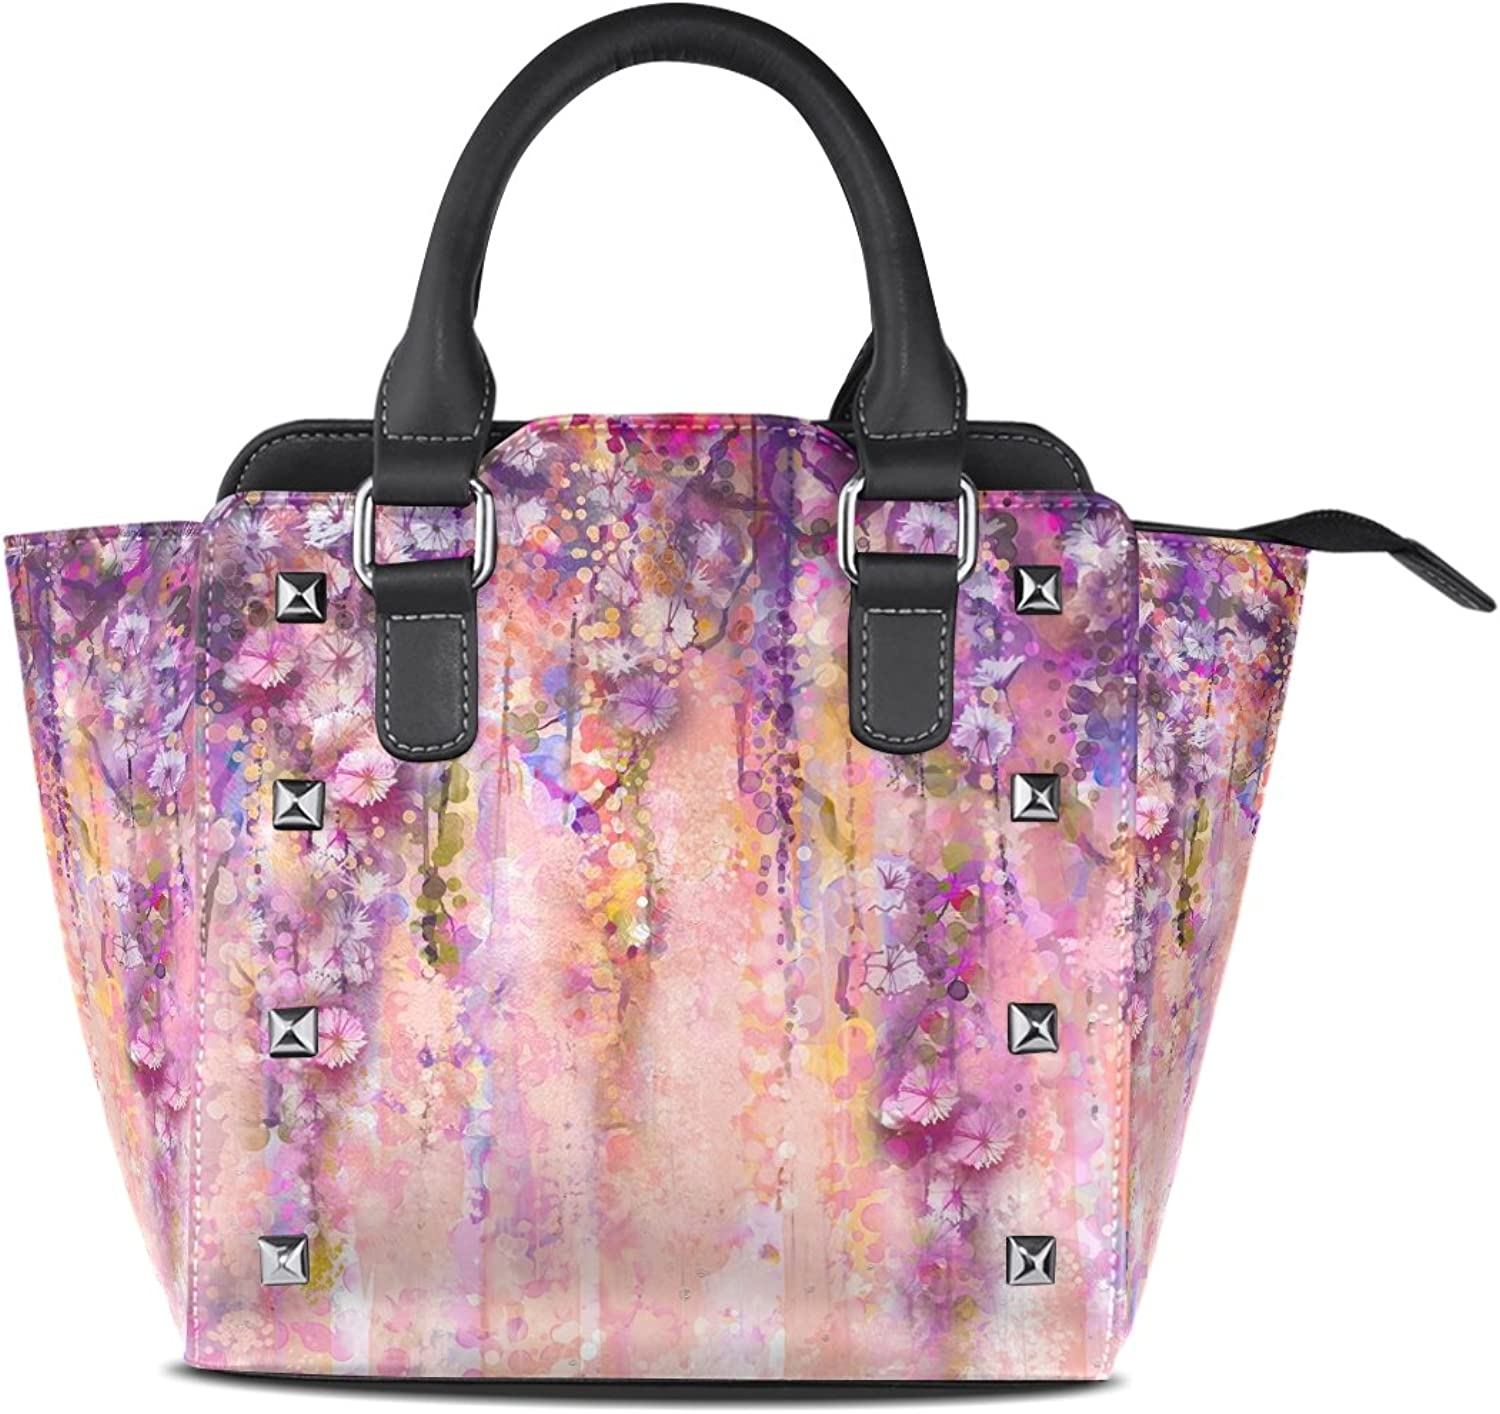 Sunlome Pink purple Watercolor Flowers Painting Print Handbags Women's PU Leather Top-Handle Shoulder Bags